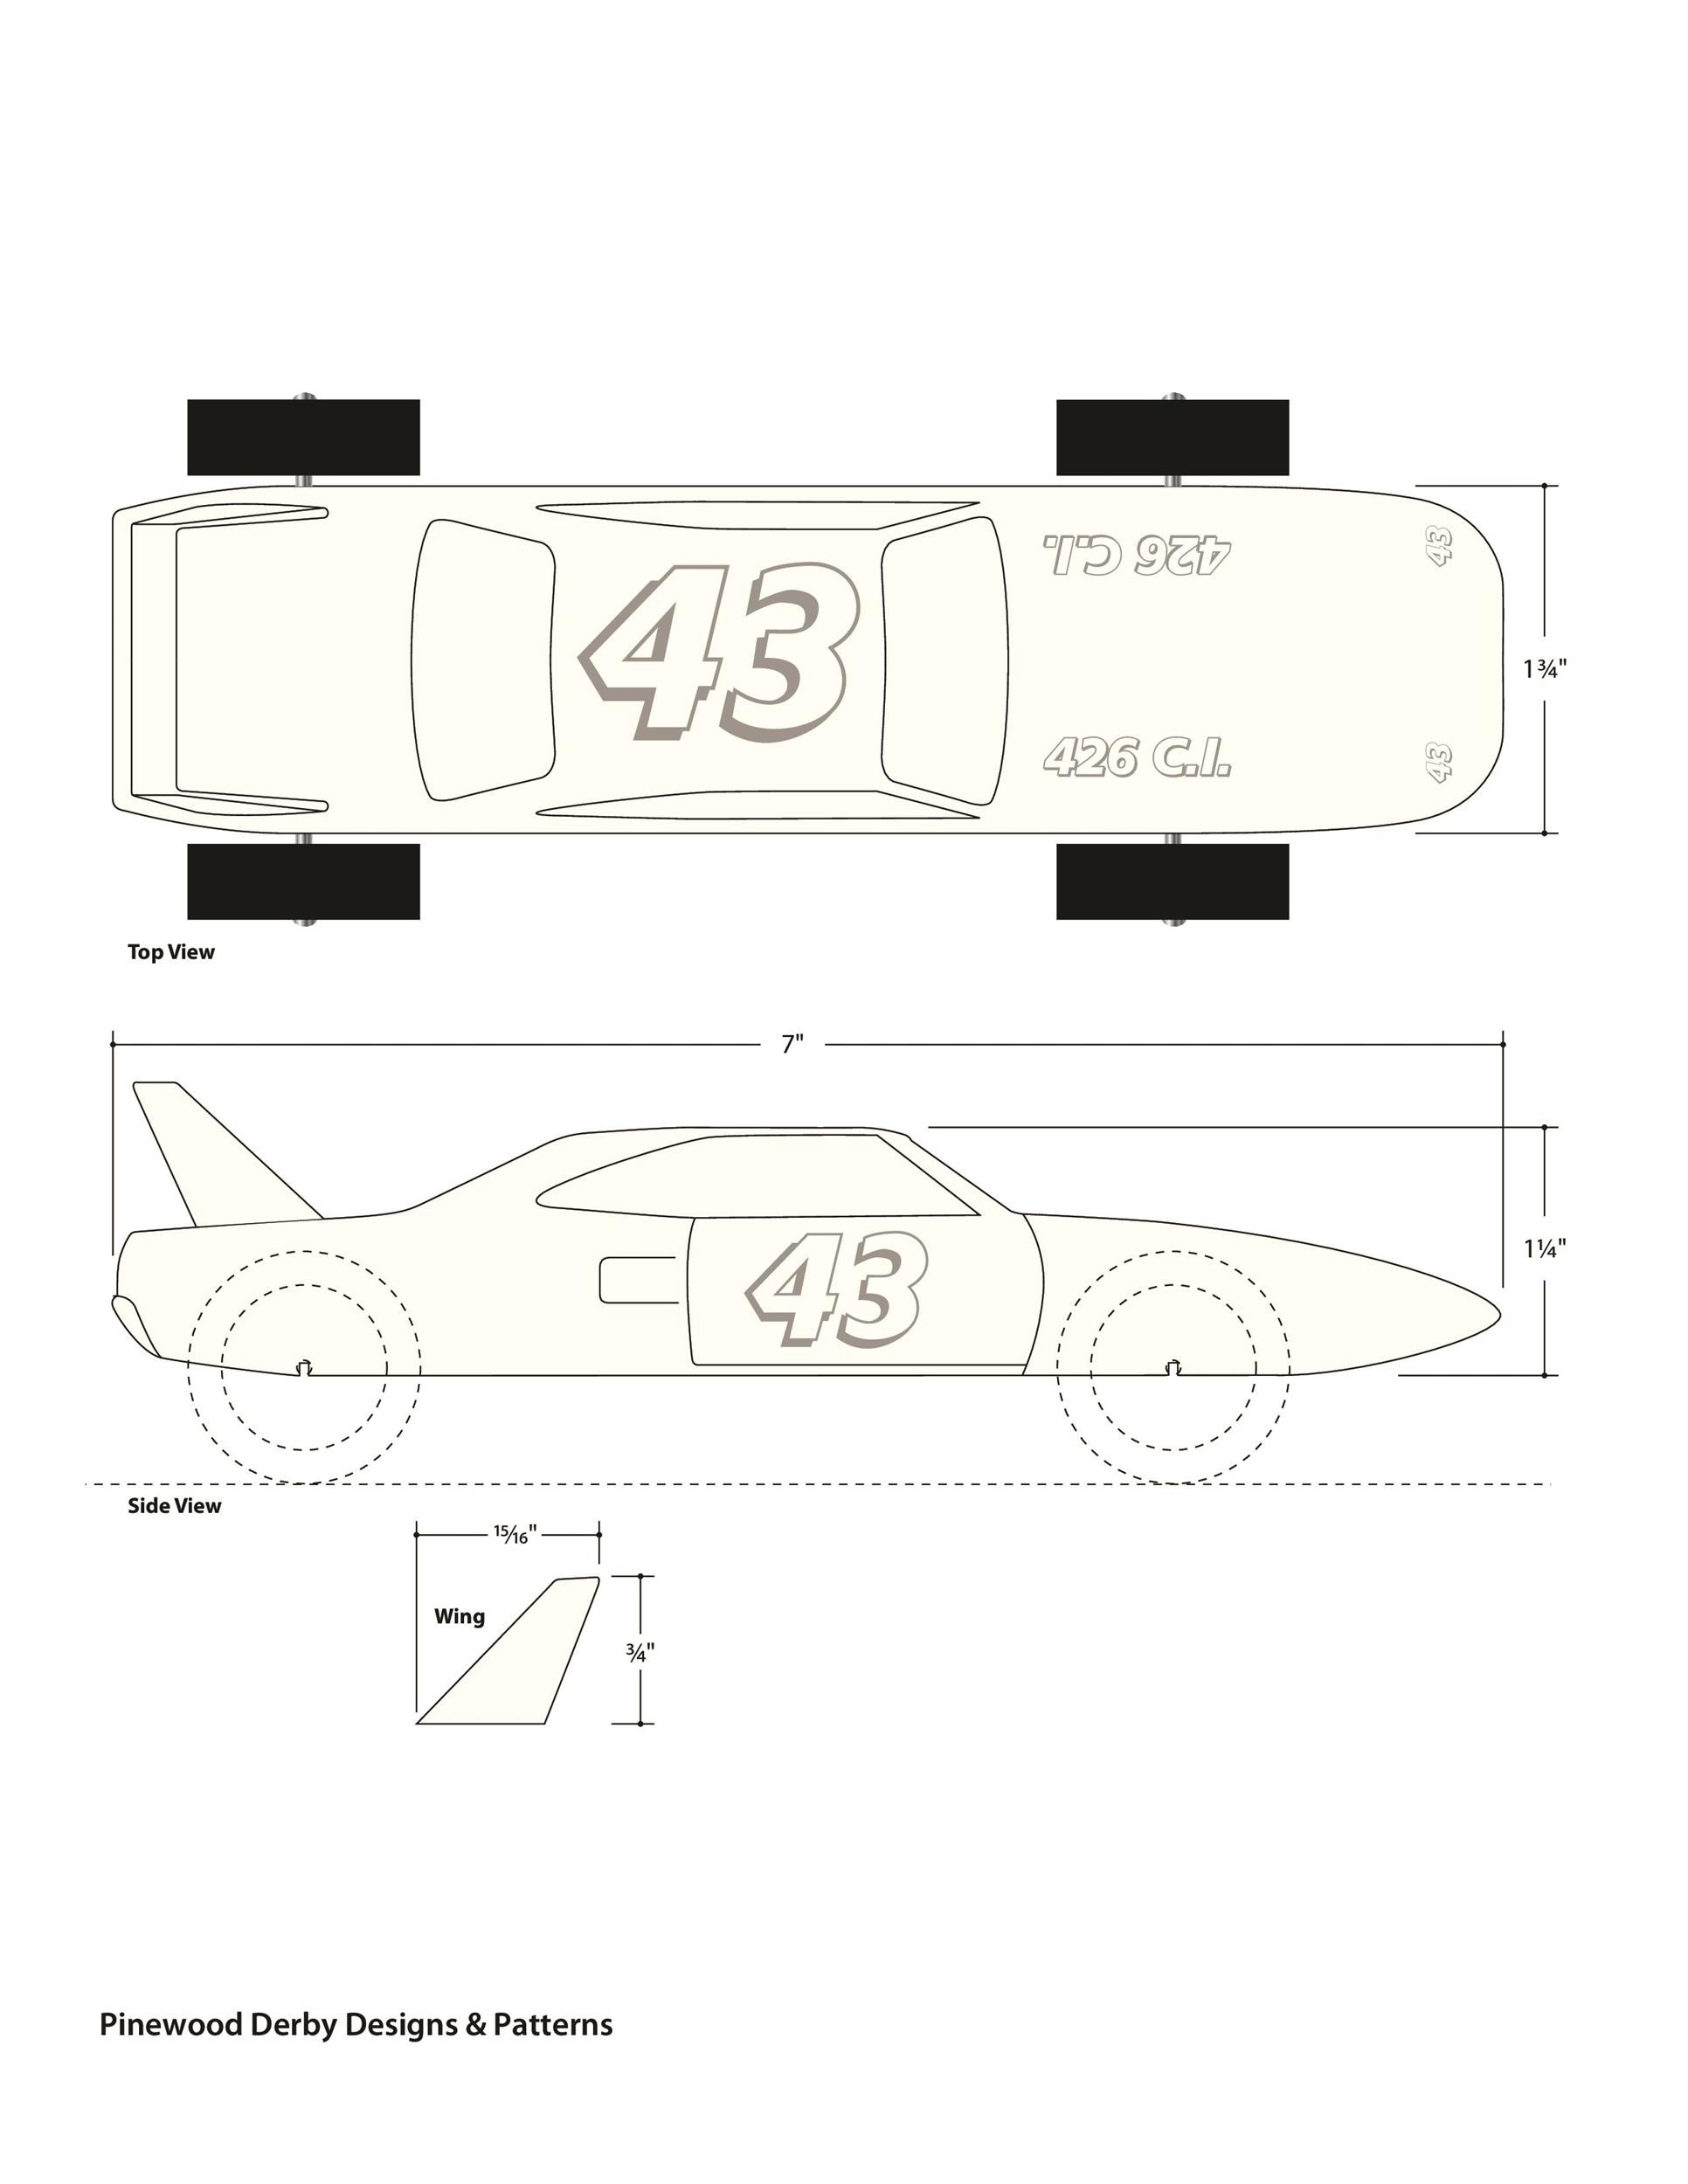 boy scout derby car templates.html